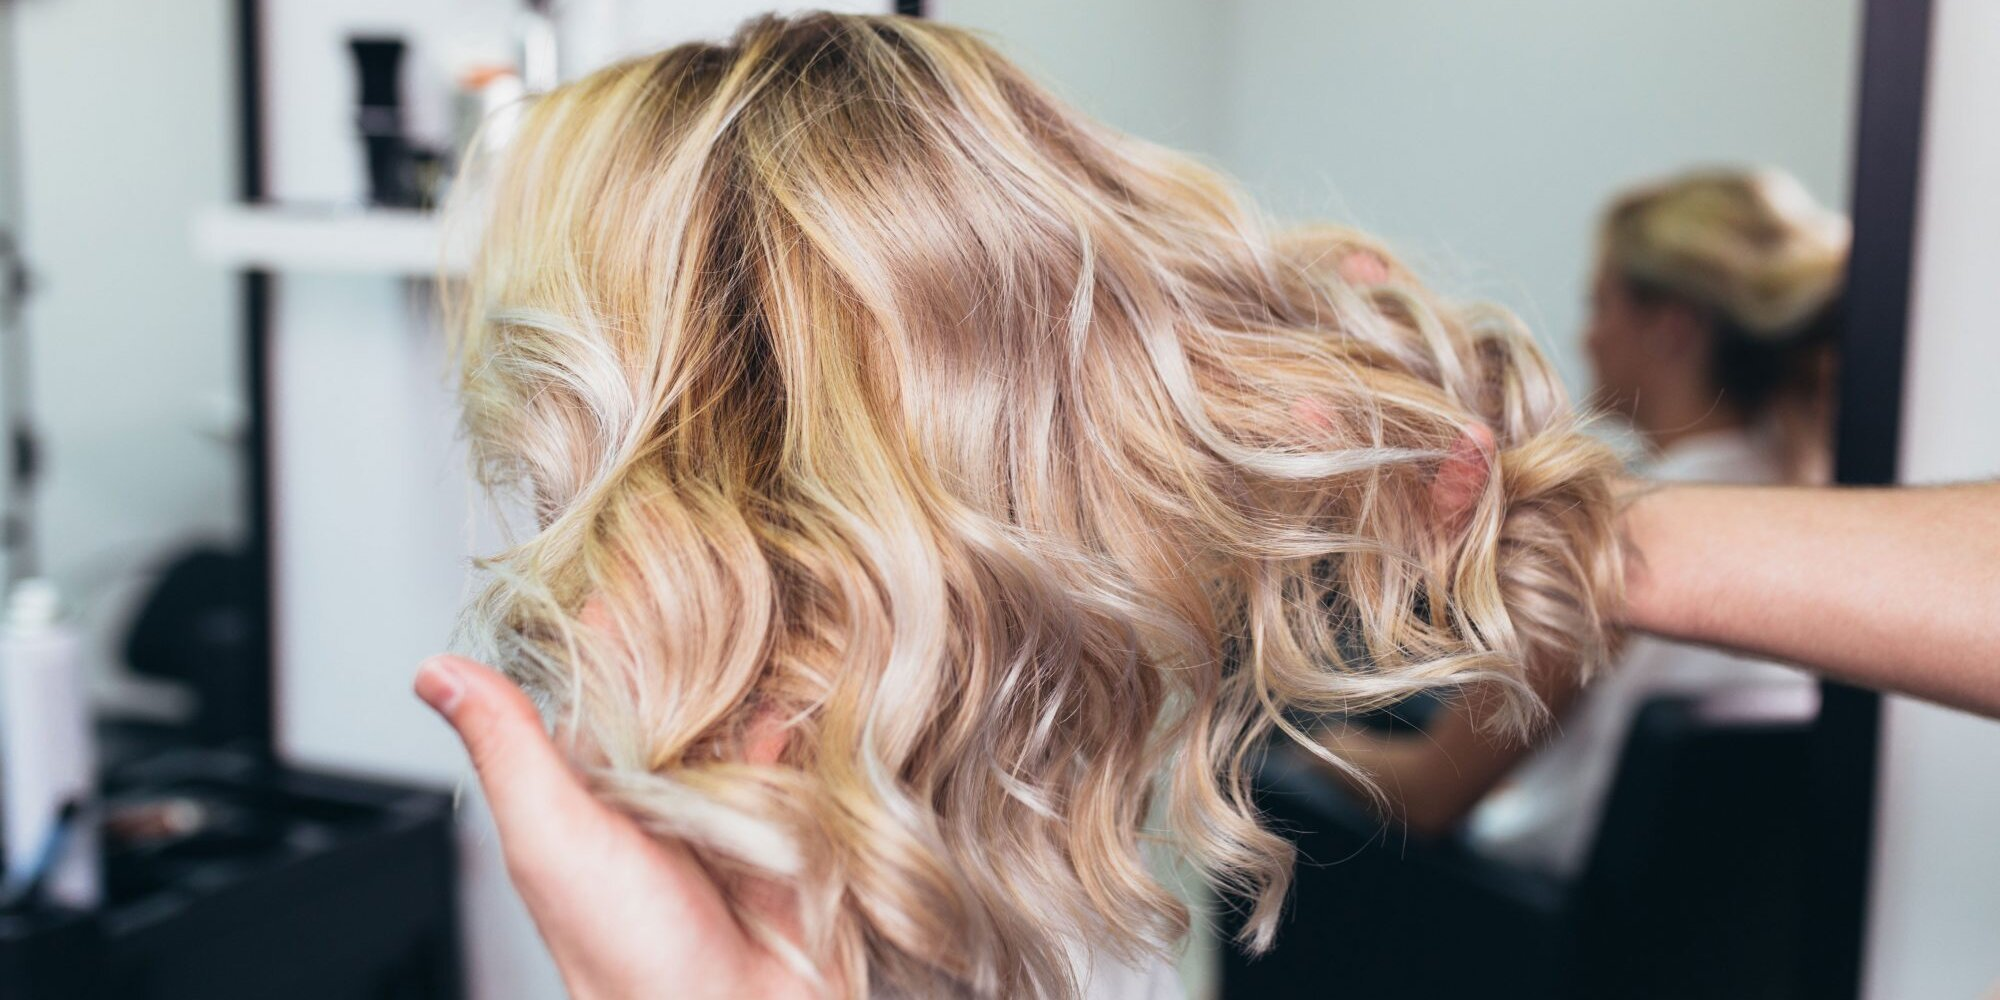 Say Hello To Spring With These Fresh Hairstyles